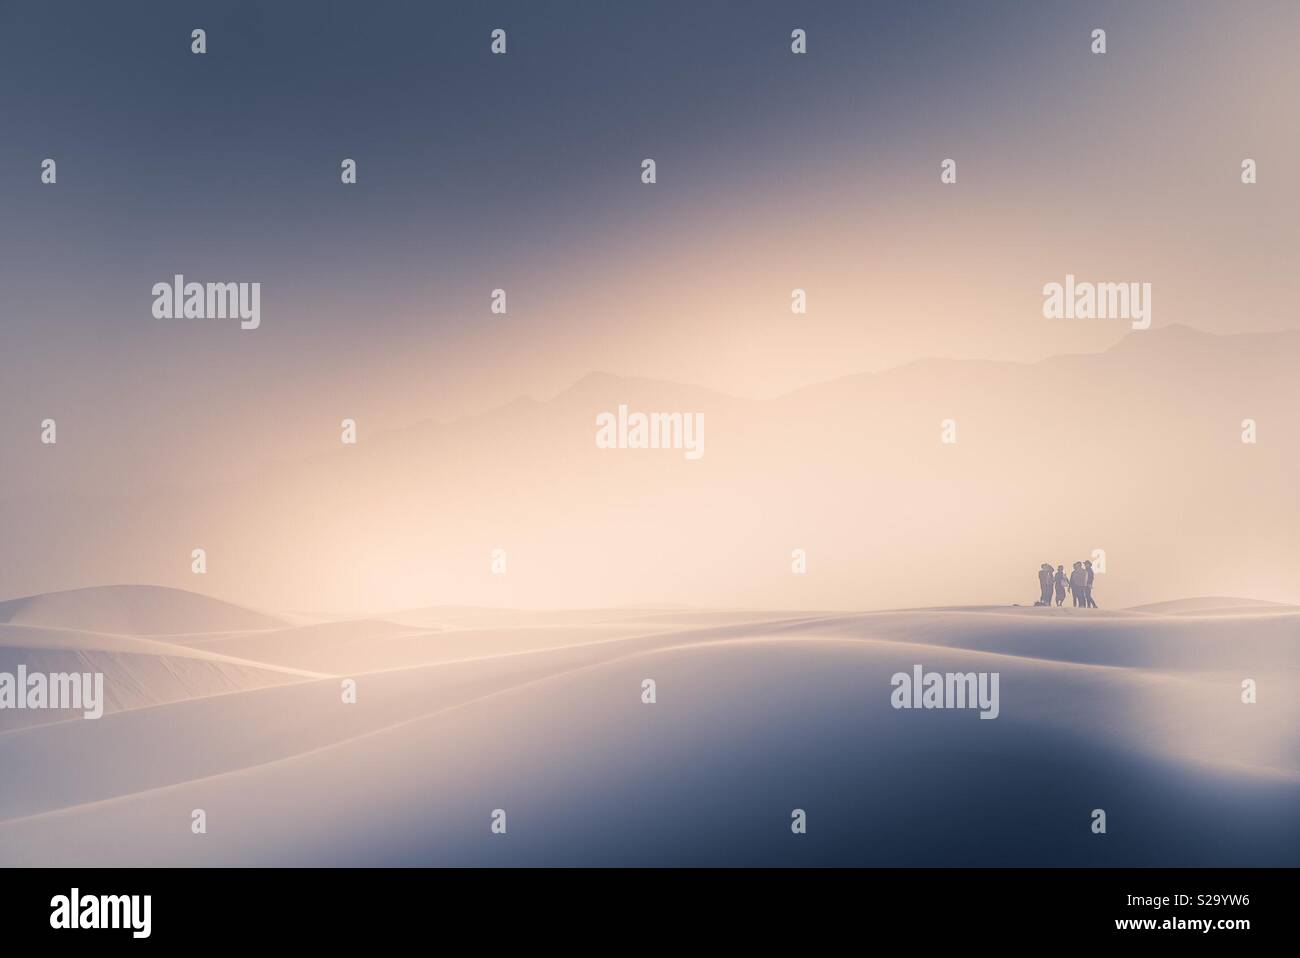 Sunset in White Sands - silhouettes - Stock Image